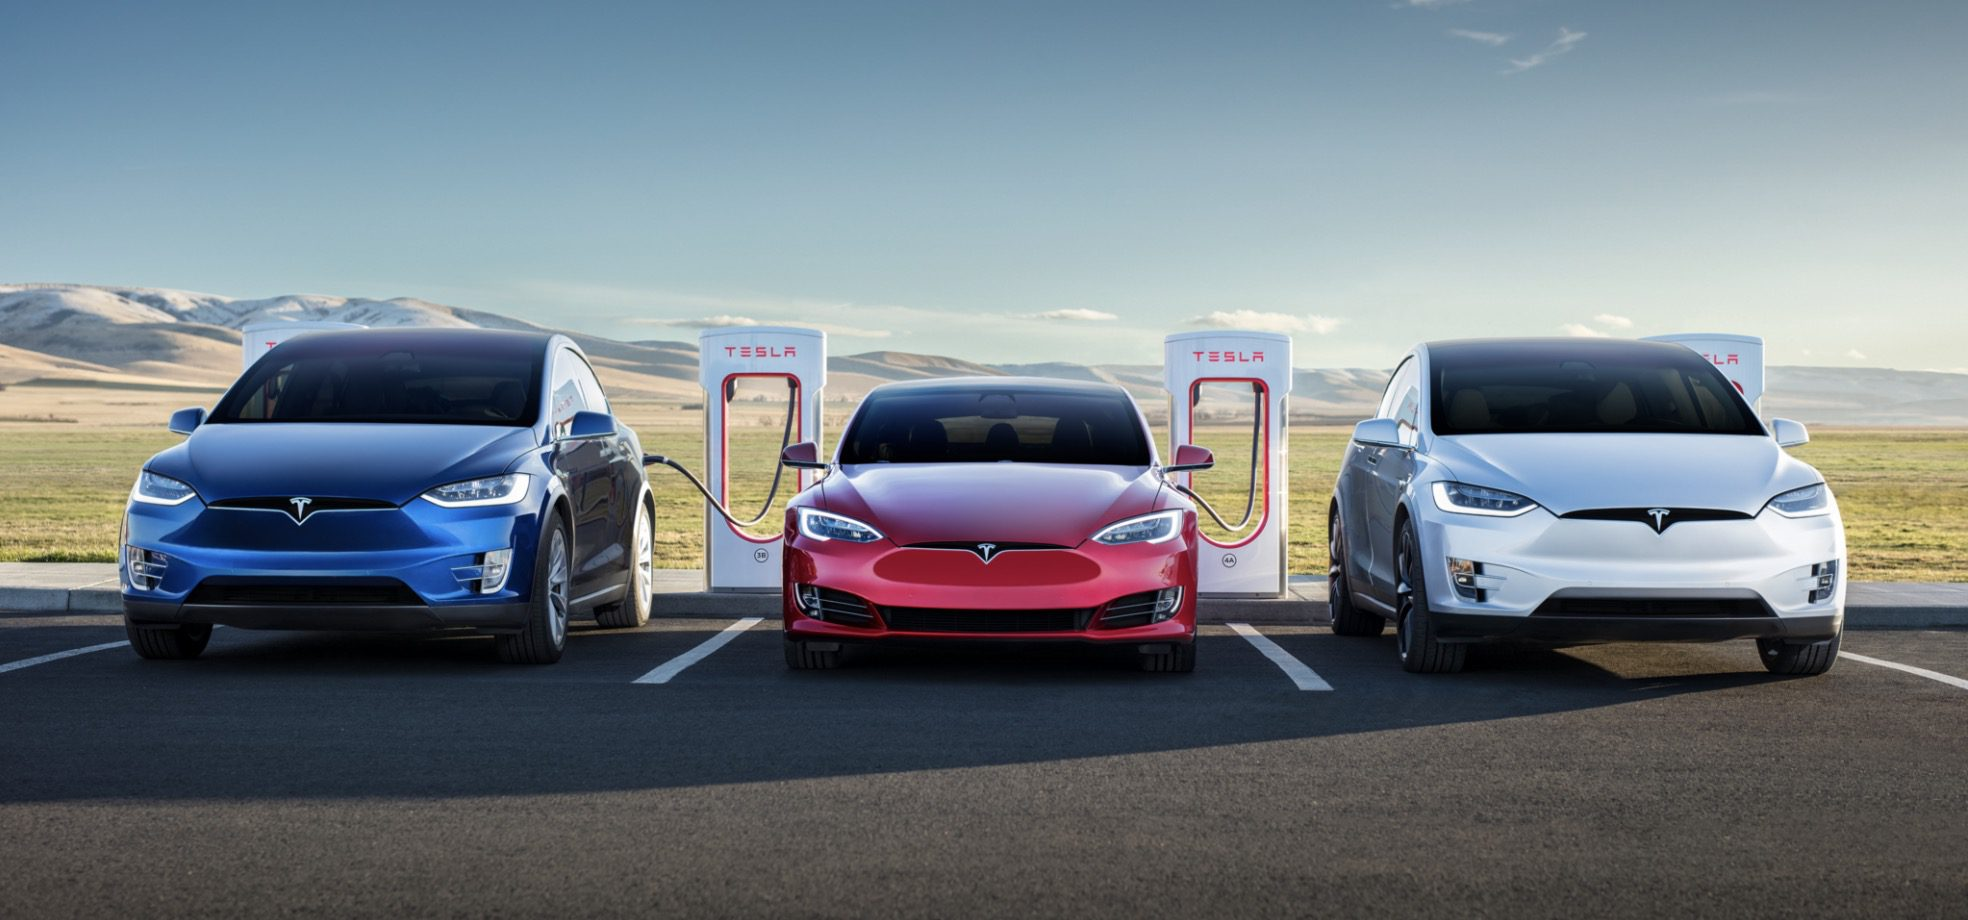 Tesla brings back free Supercharging as end-of-quarter incentive – with a caveat